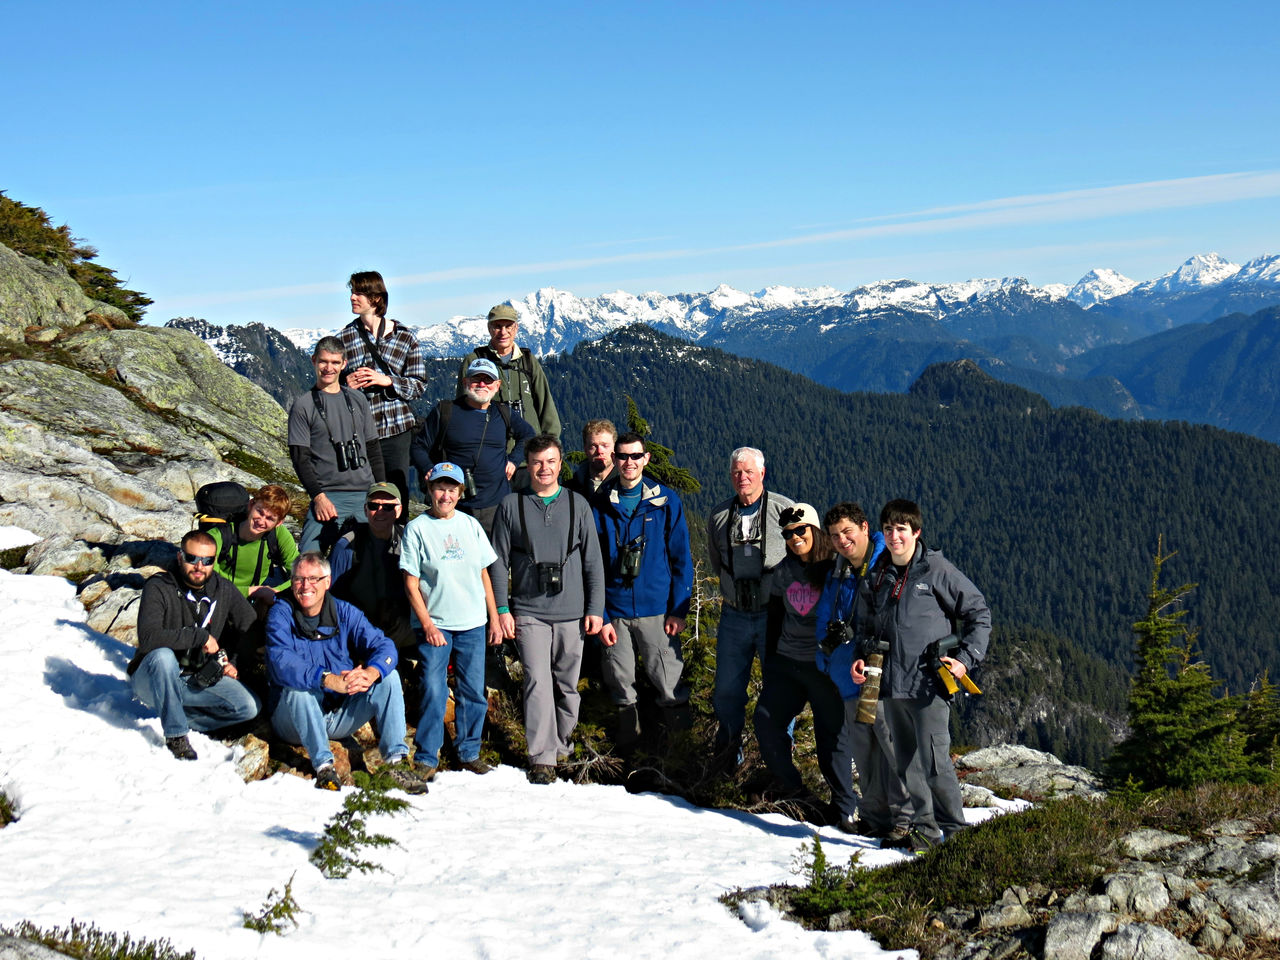 Hafting third from left of the birding group on Mount Seymour, Metro Vancouver, 2015.